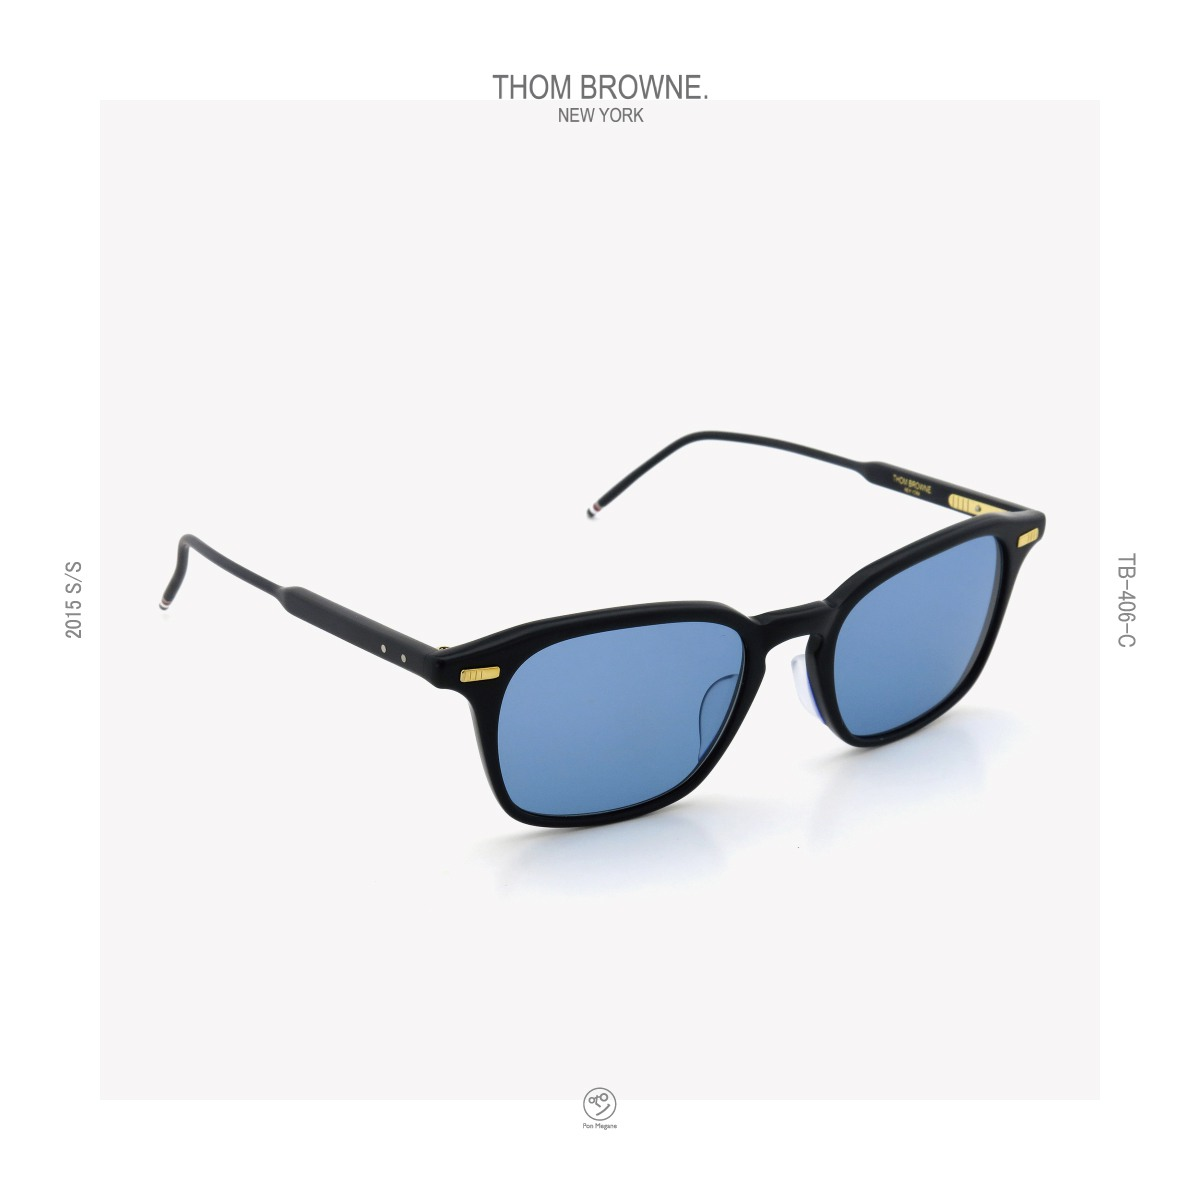 THOM-BROWNE 2015s/s TB-406-C-T NVY 51size